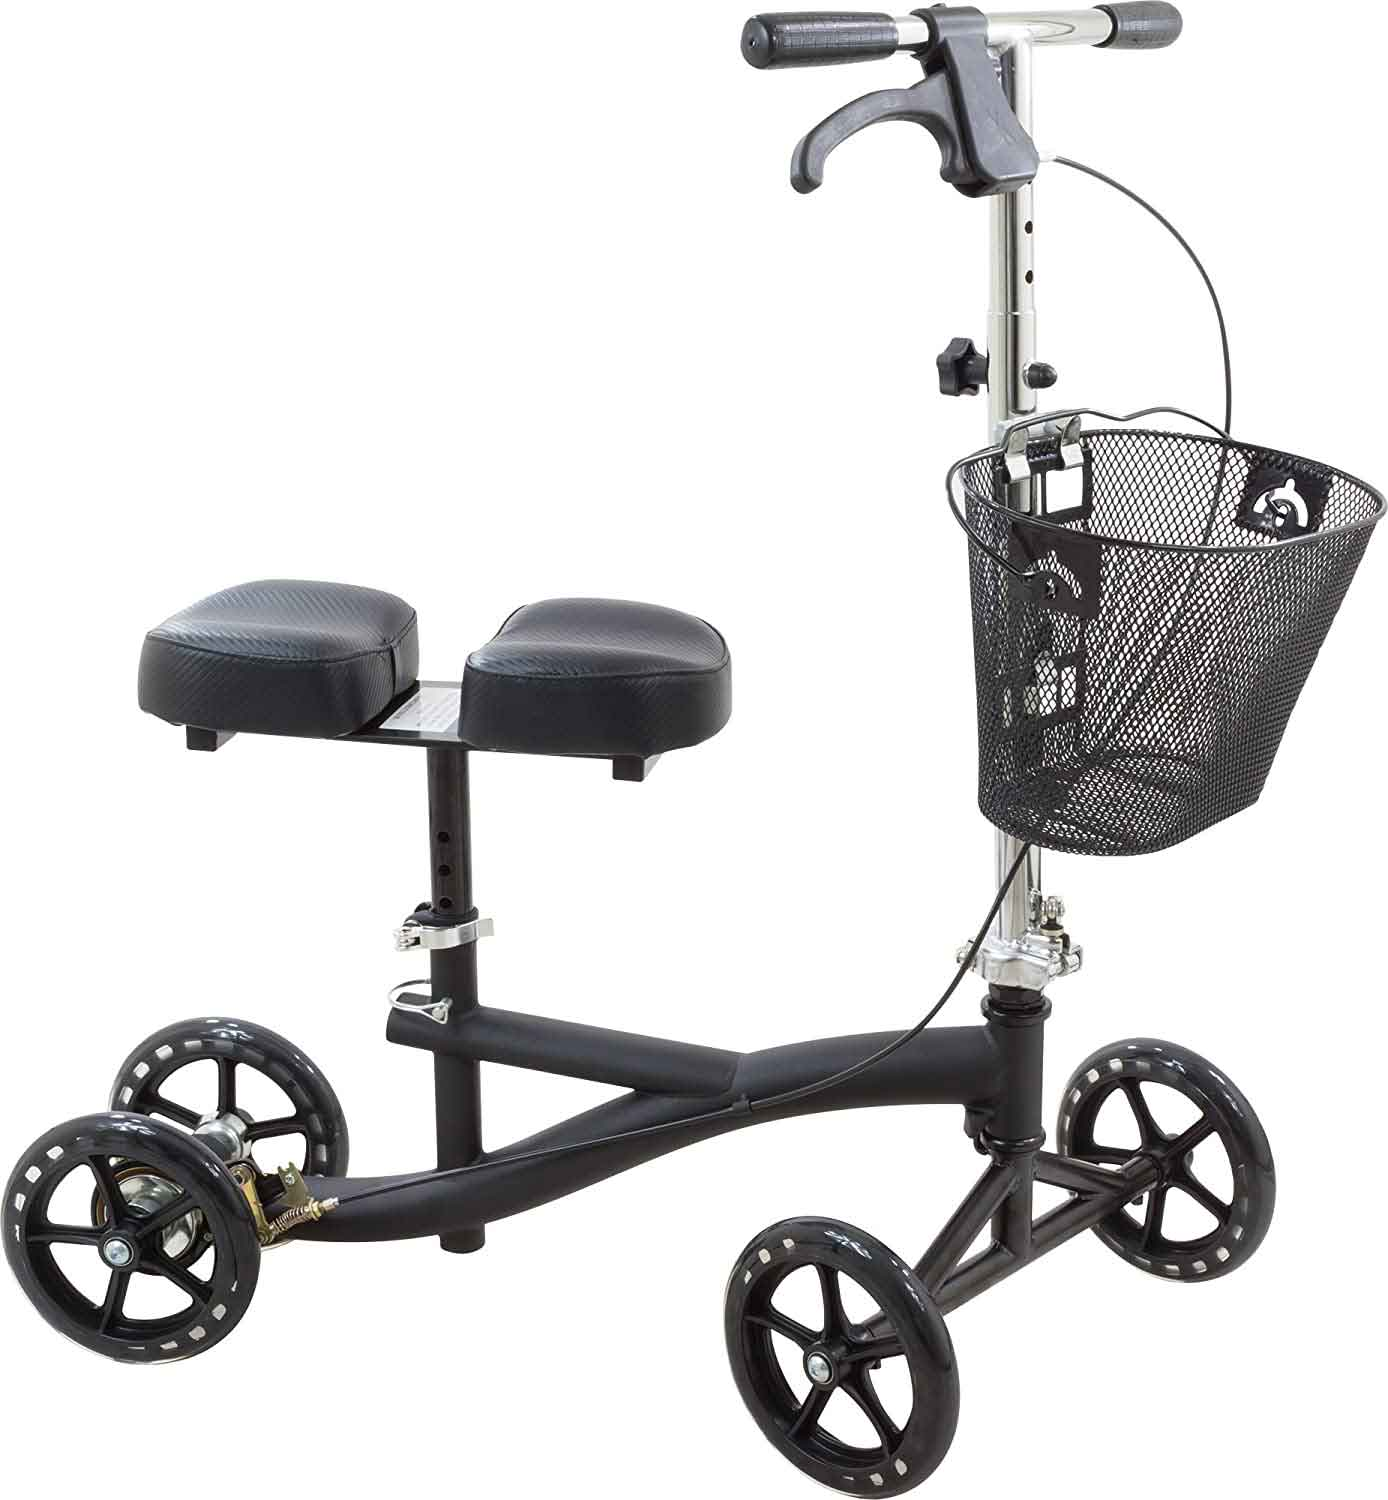 5.-Roscoe-Knee-Scooter-with-Basket